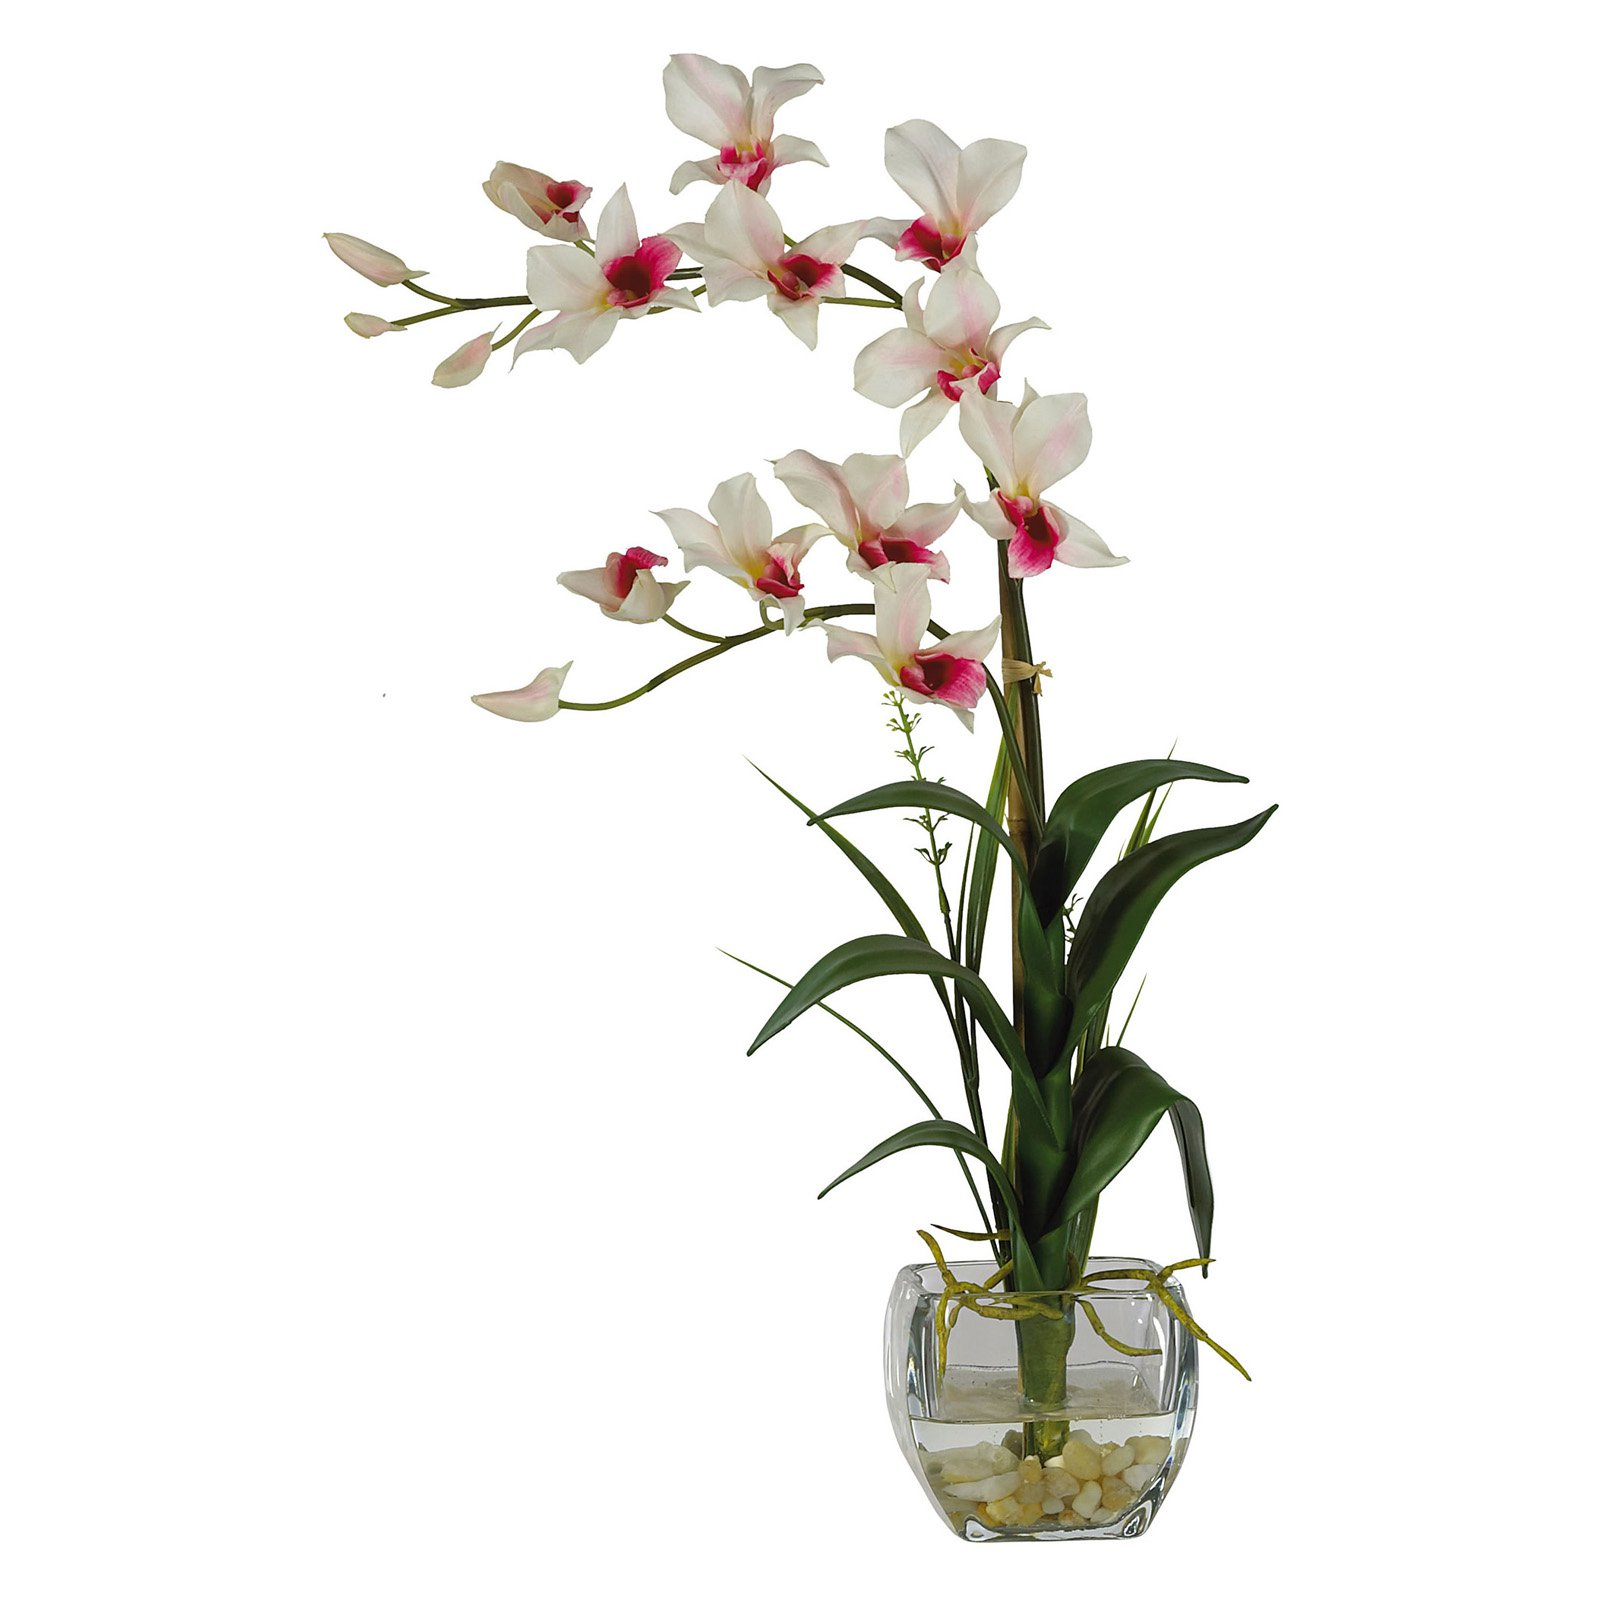 225 & Nearly Natural Dendrobium with Glass Vase Silk Flower Arrangement White